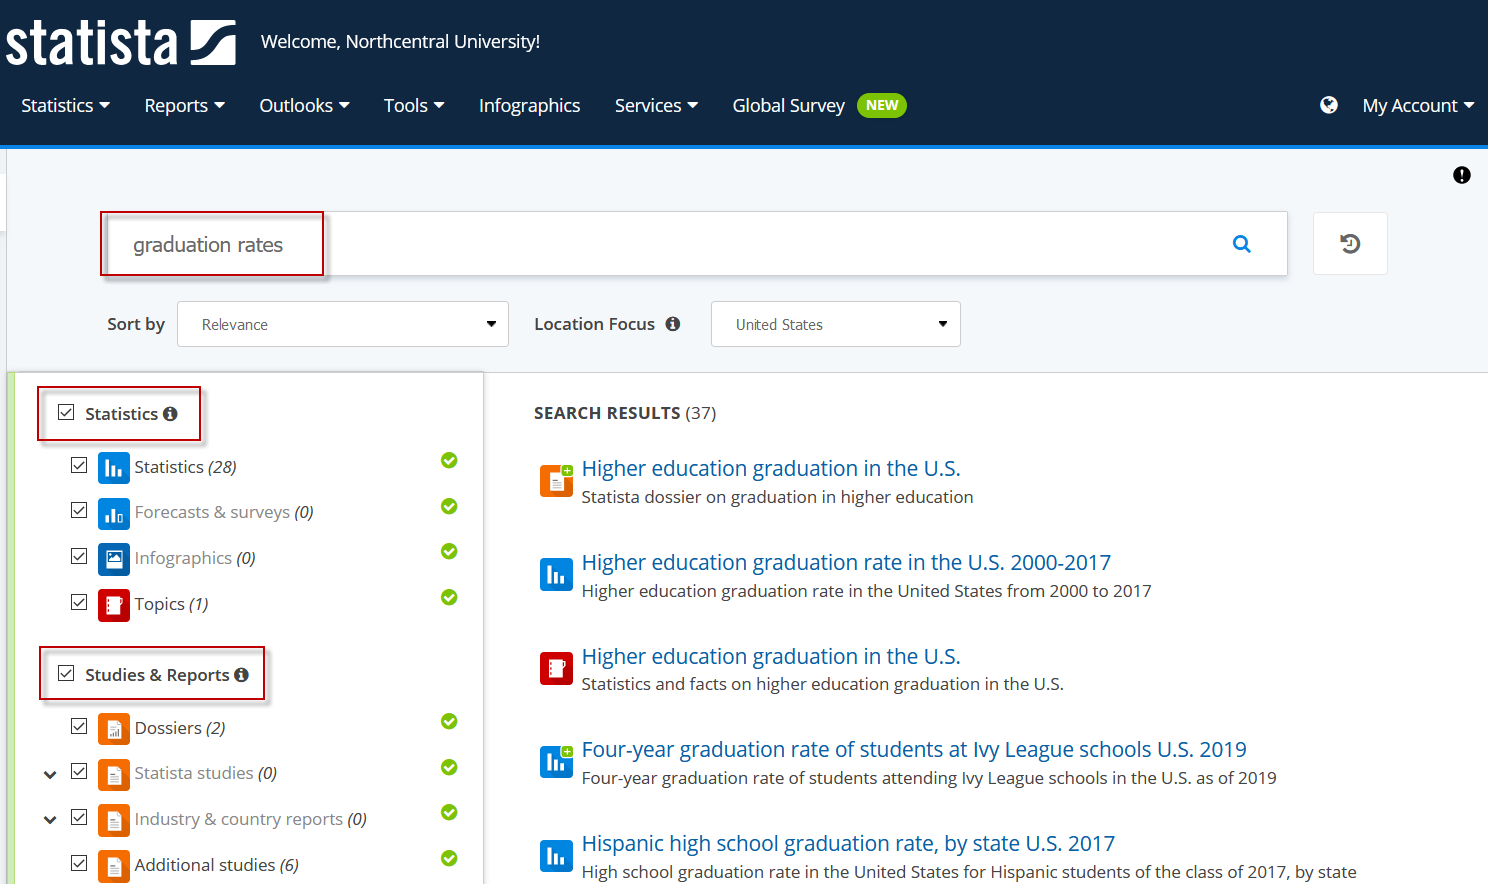 Screenshot showing Statista search results screen